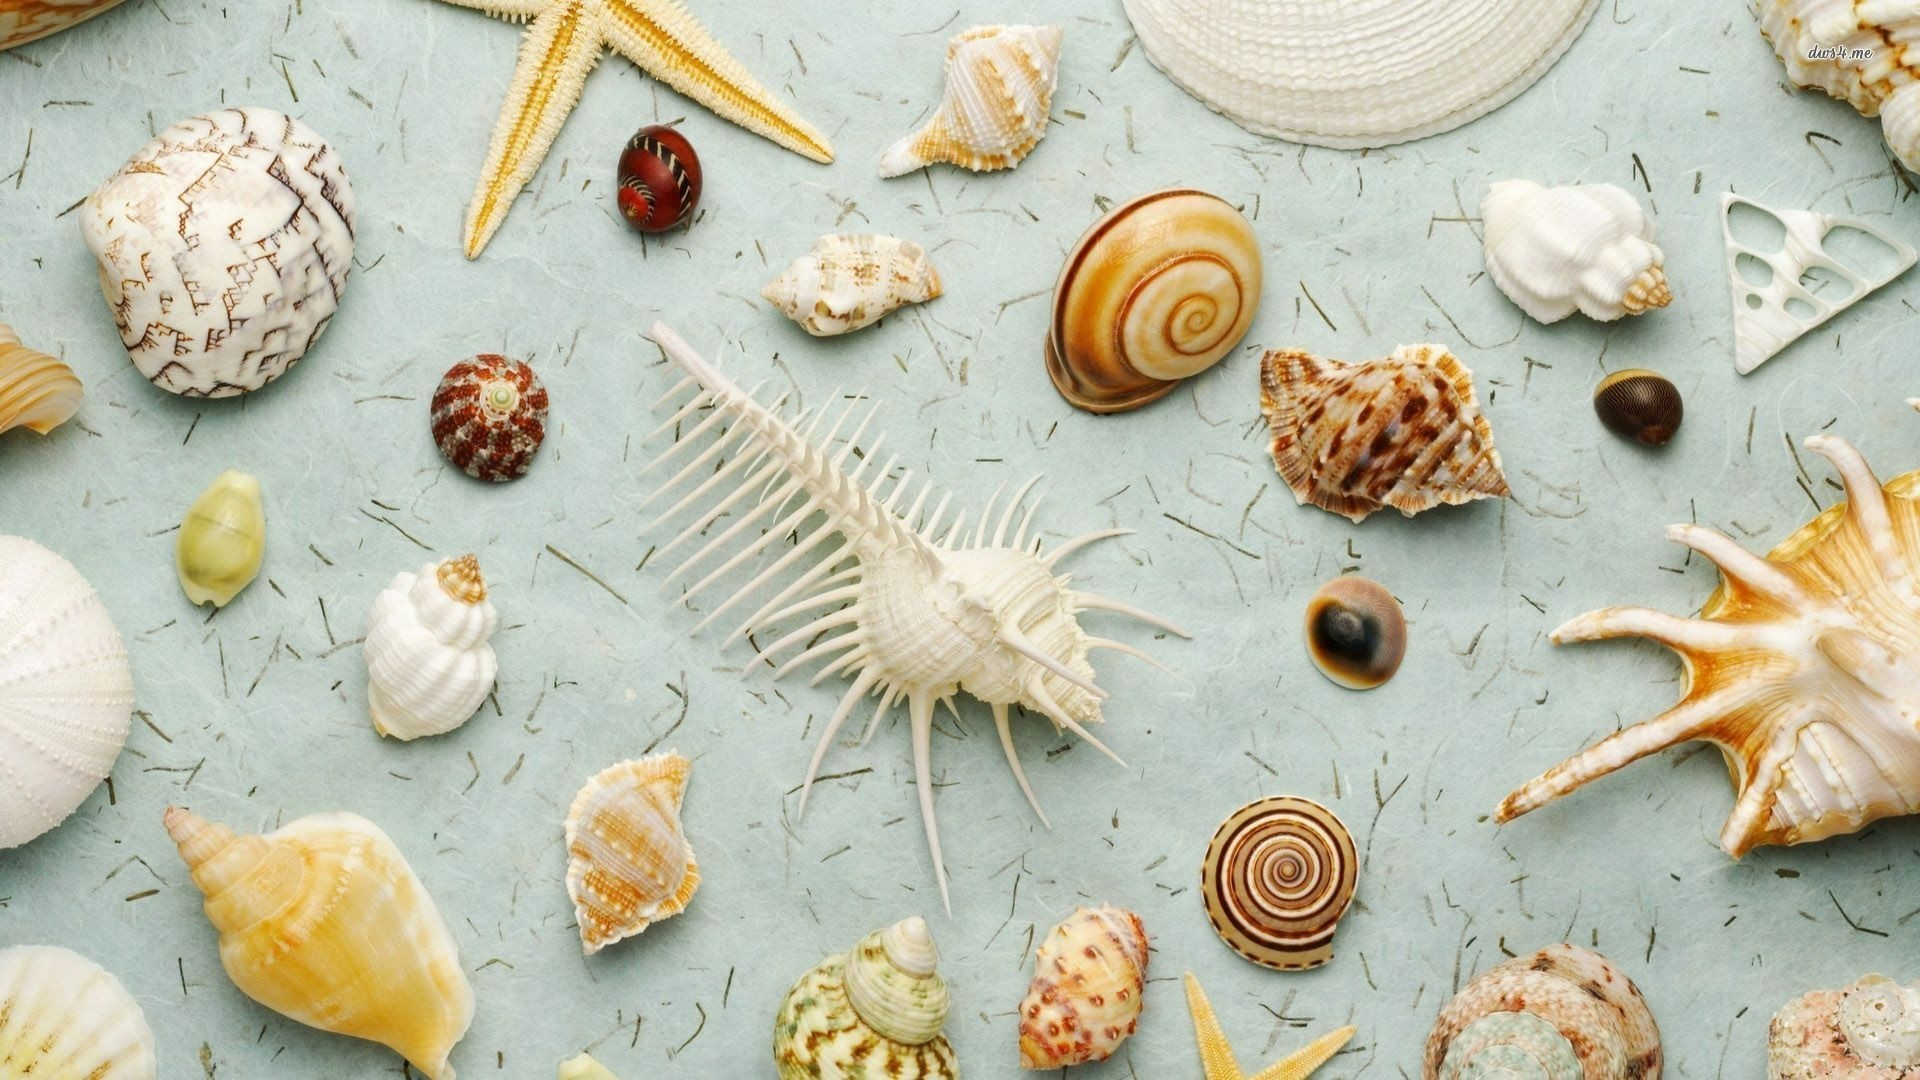 Seashell hd desktop wallpaper